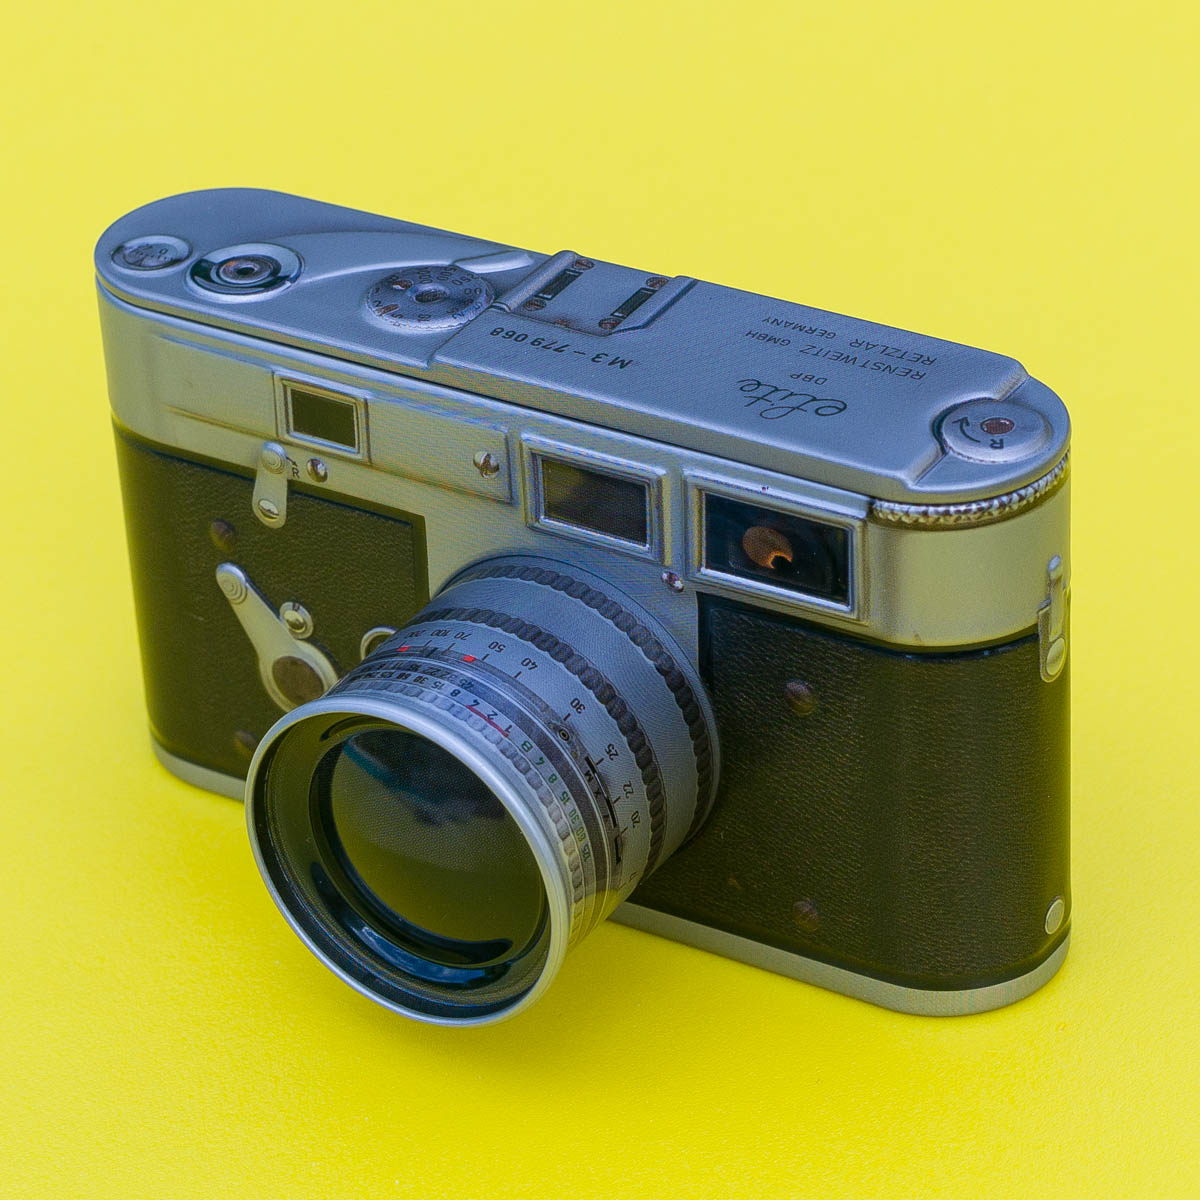 Leica m3 vintage camera replica tins now available for for Camera camera